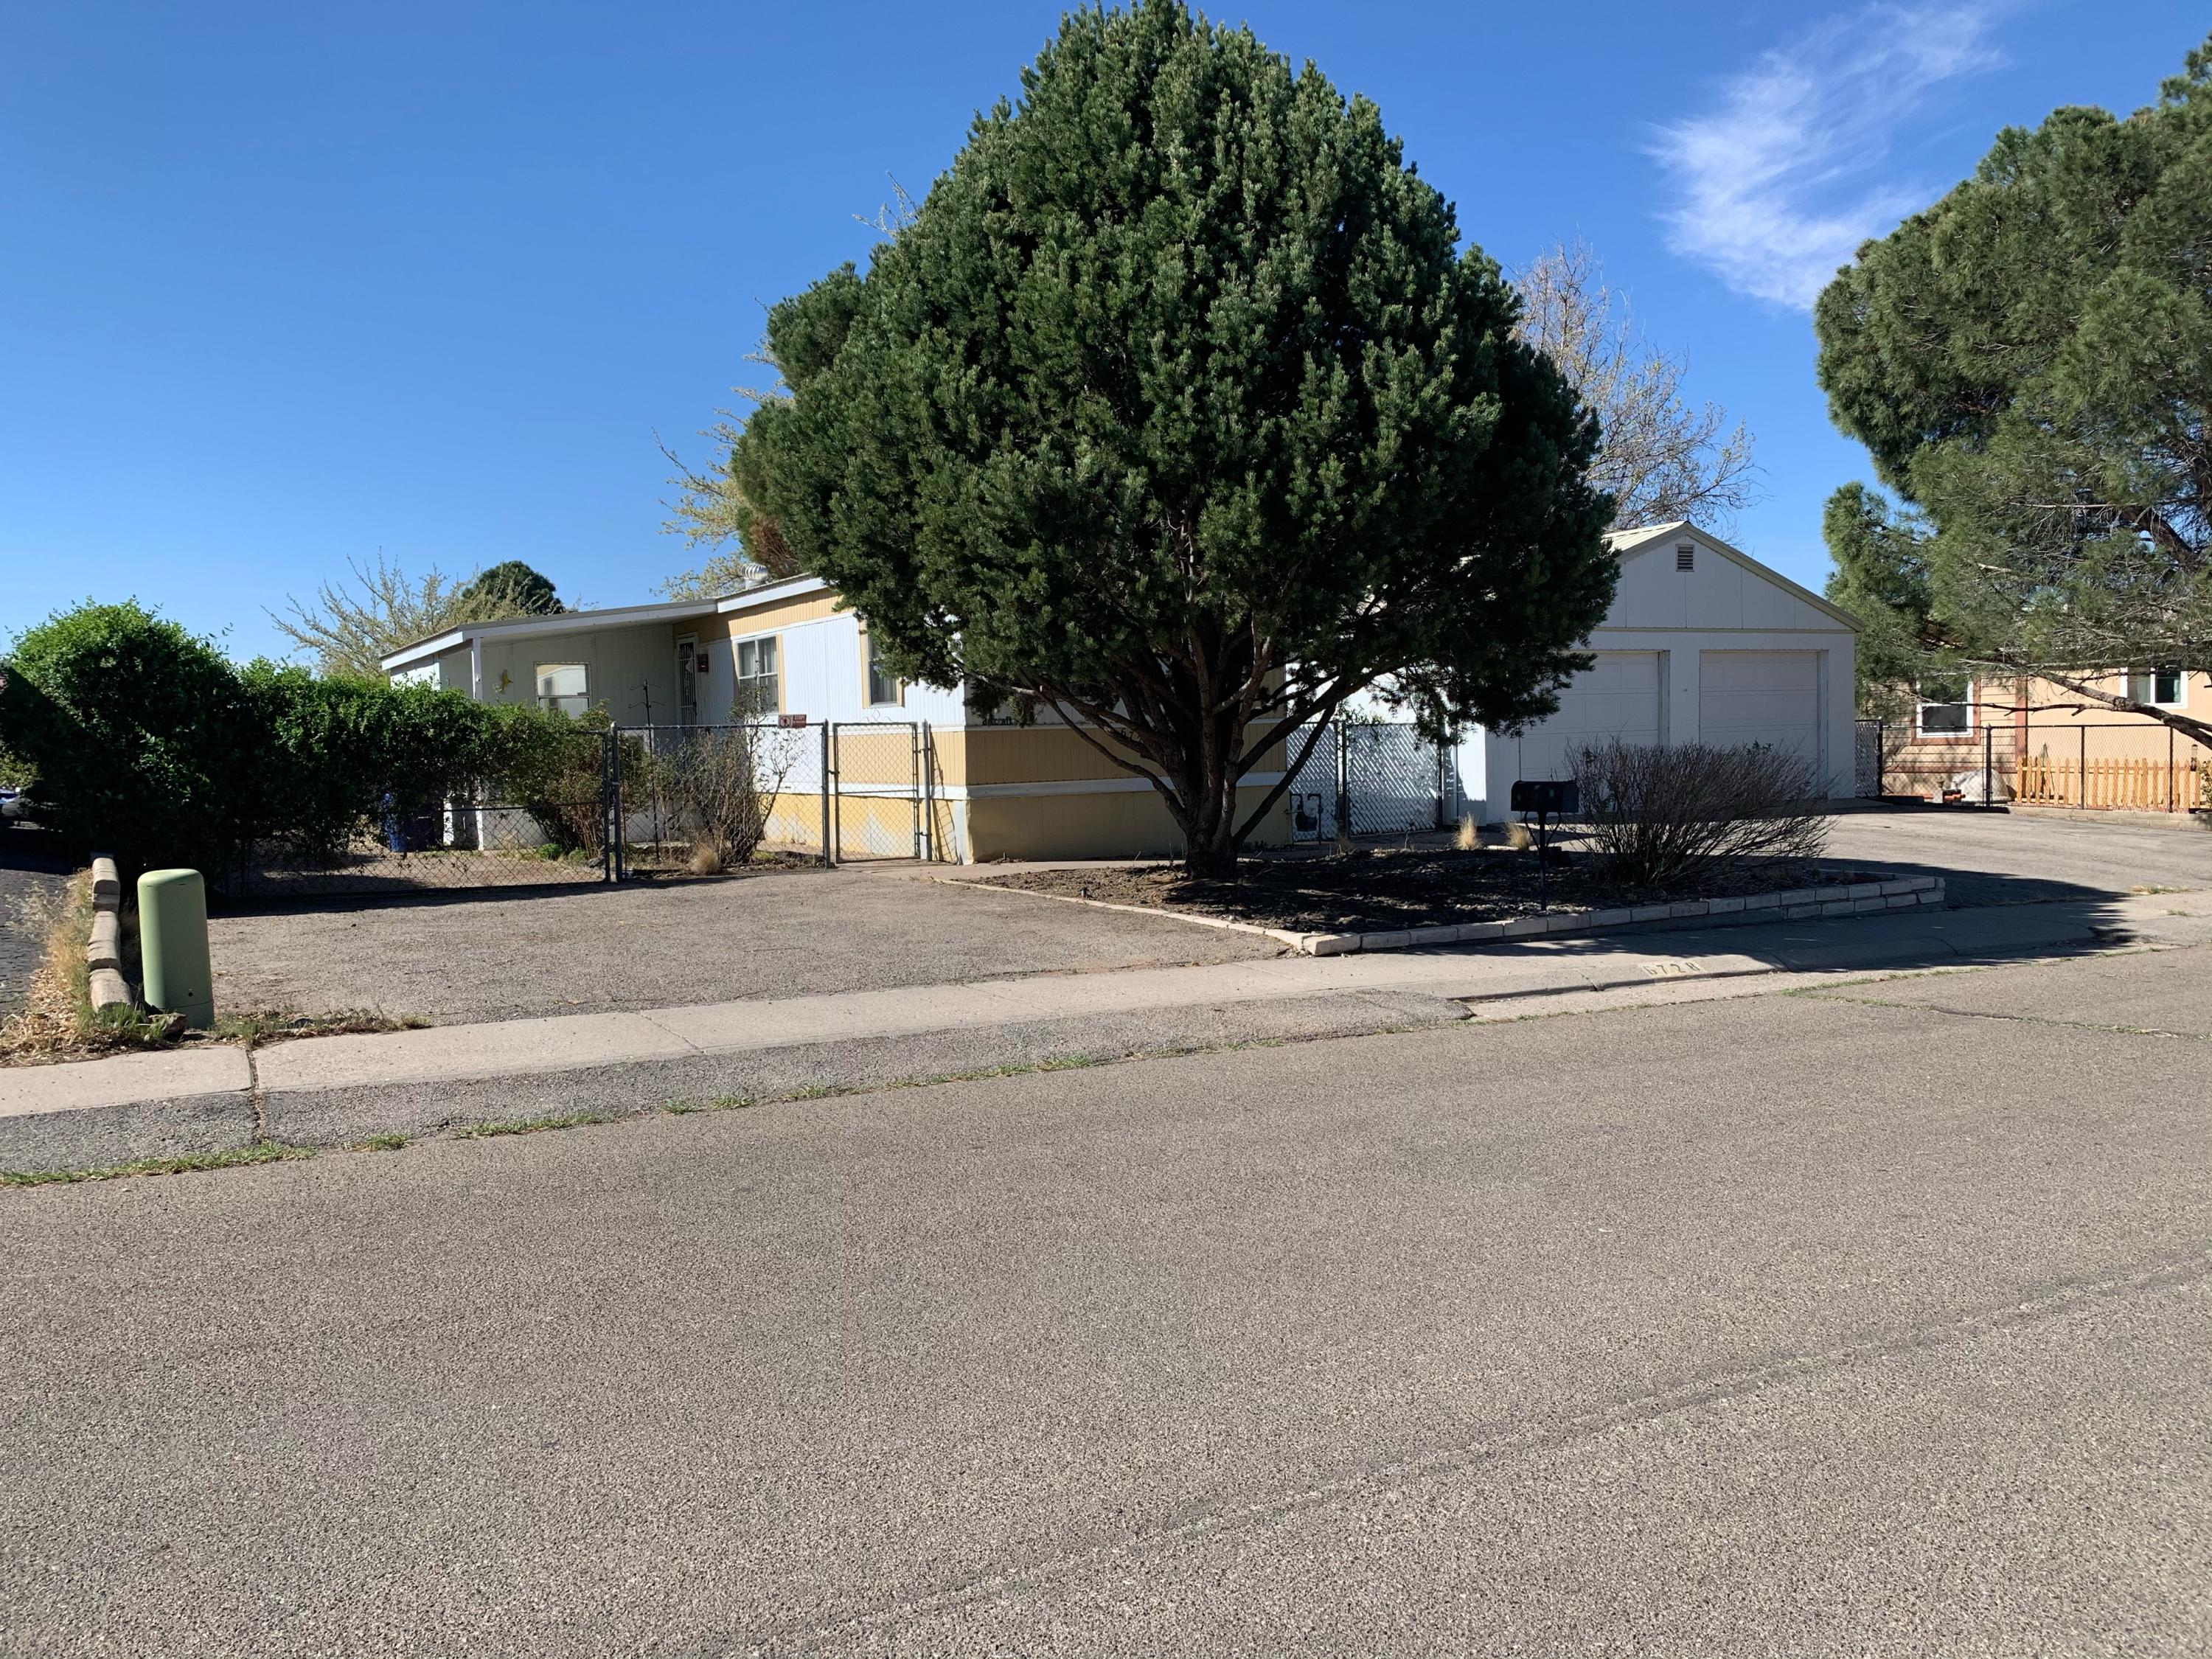 Comfortable living in Jade Park. Location is excellent: close to shopping, restaurants and close to the interstate. Refrigerator, washer and dryer remain. Covered patios, both front and back with nice shady yard. Two car garage. Bonus room that could be den or study.